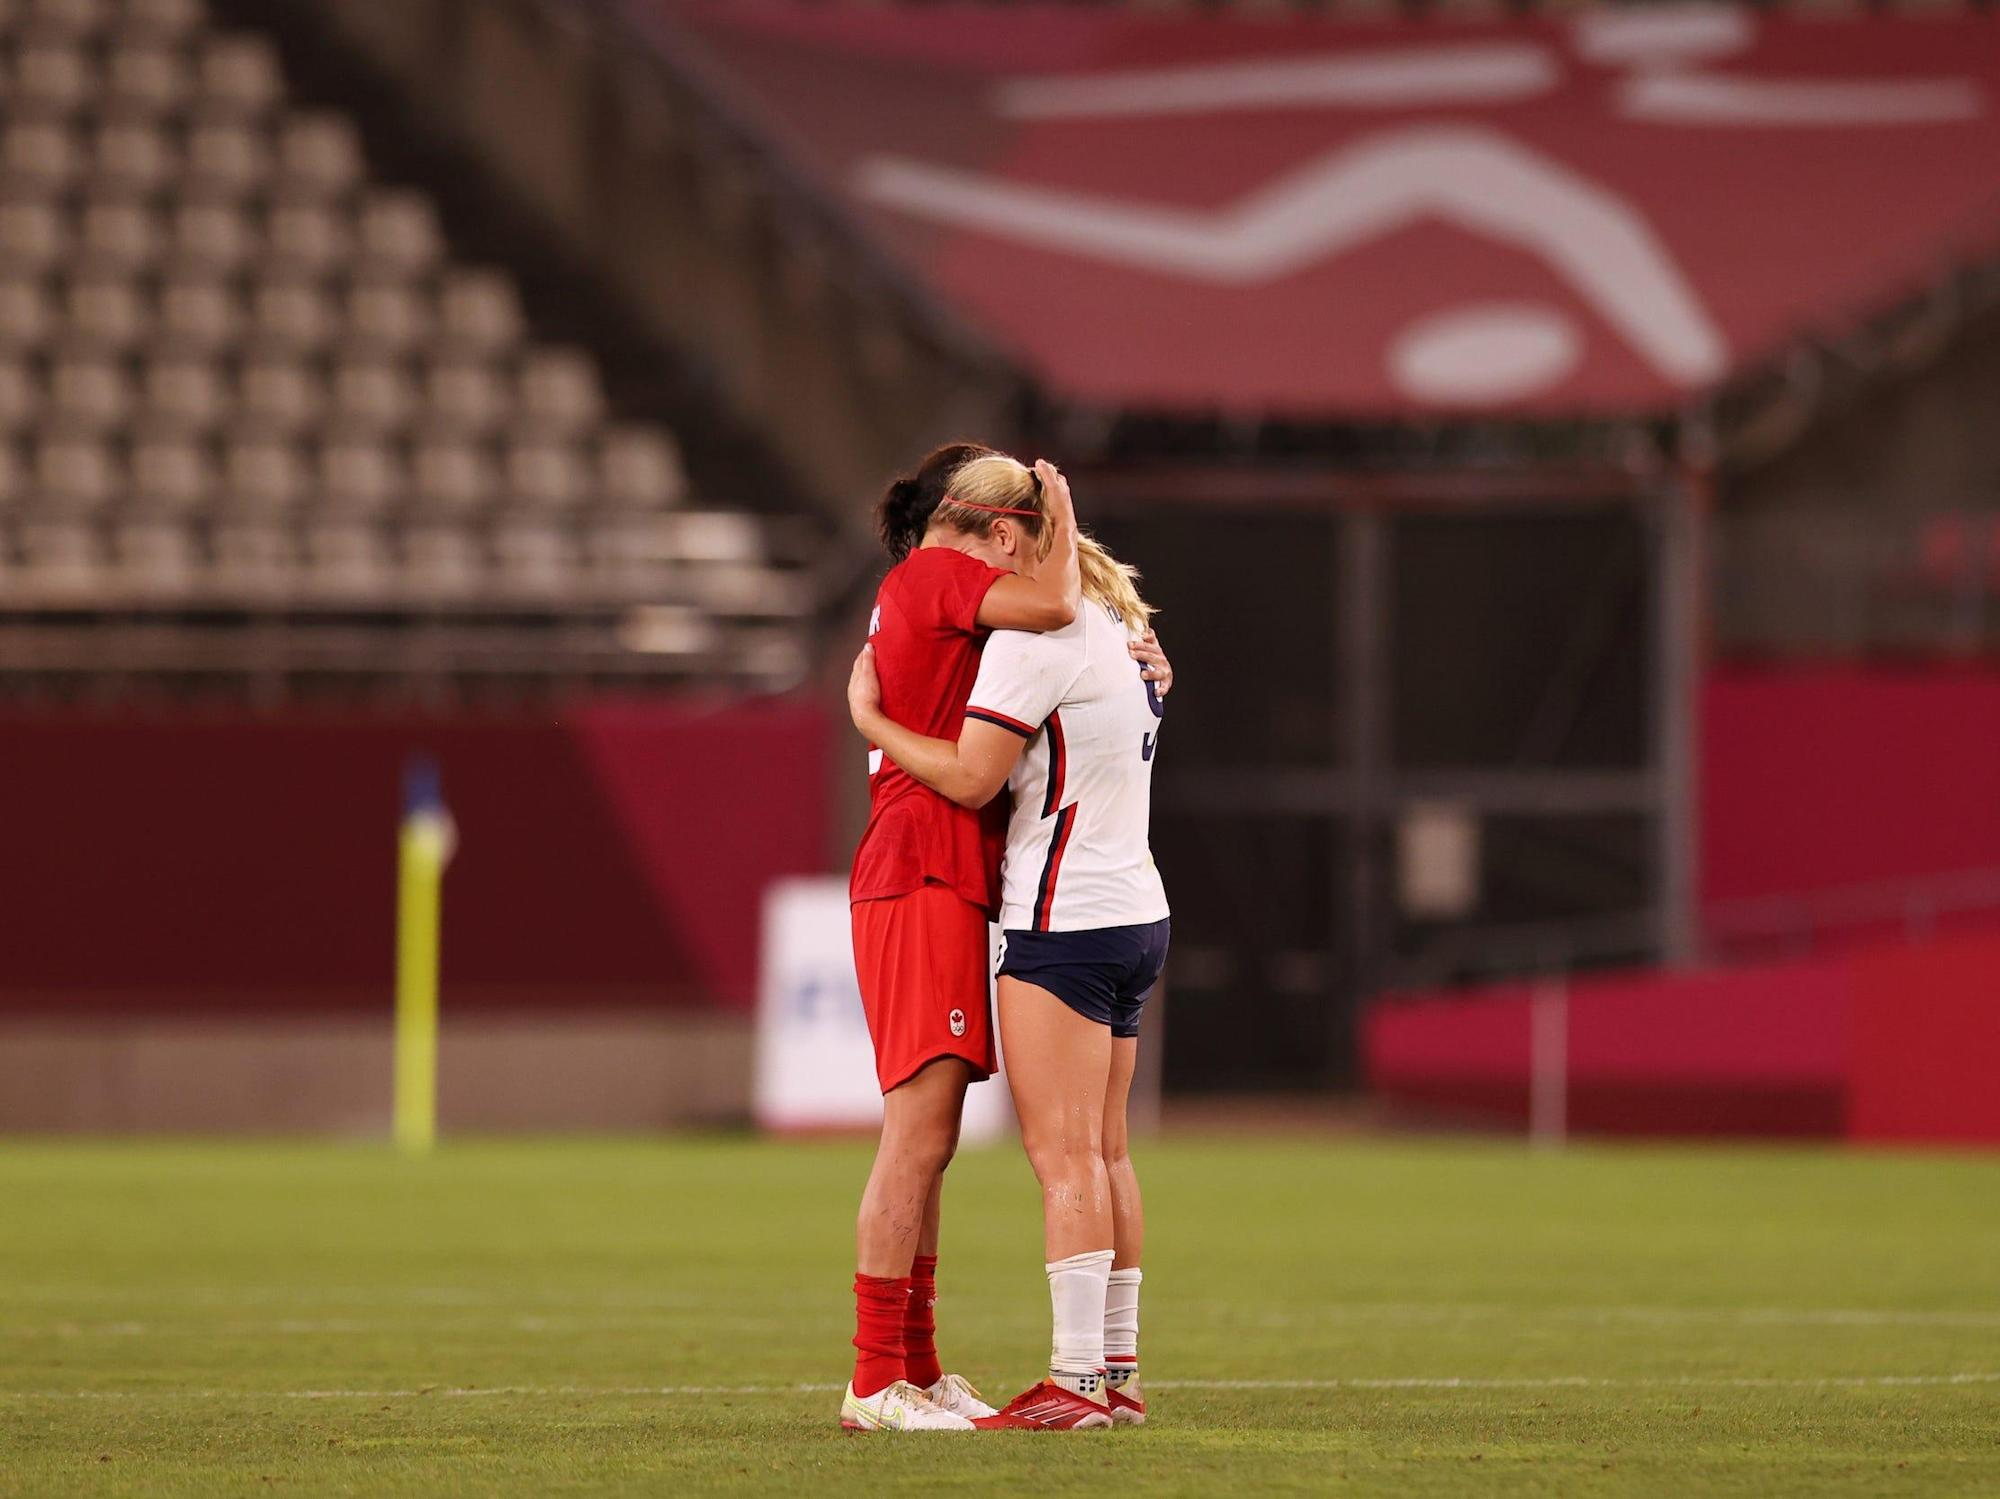 Canada's soccer captain consoled her American club teammate after the USWNT lost its shot at Olympic gold